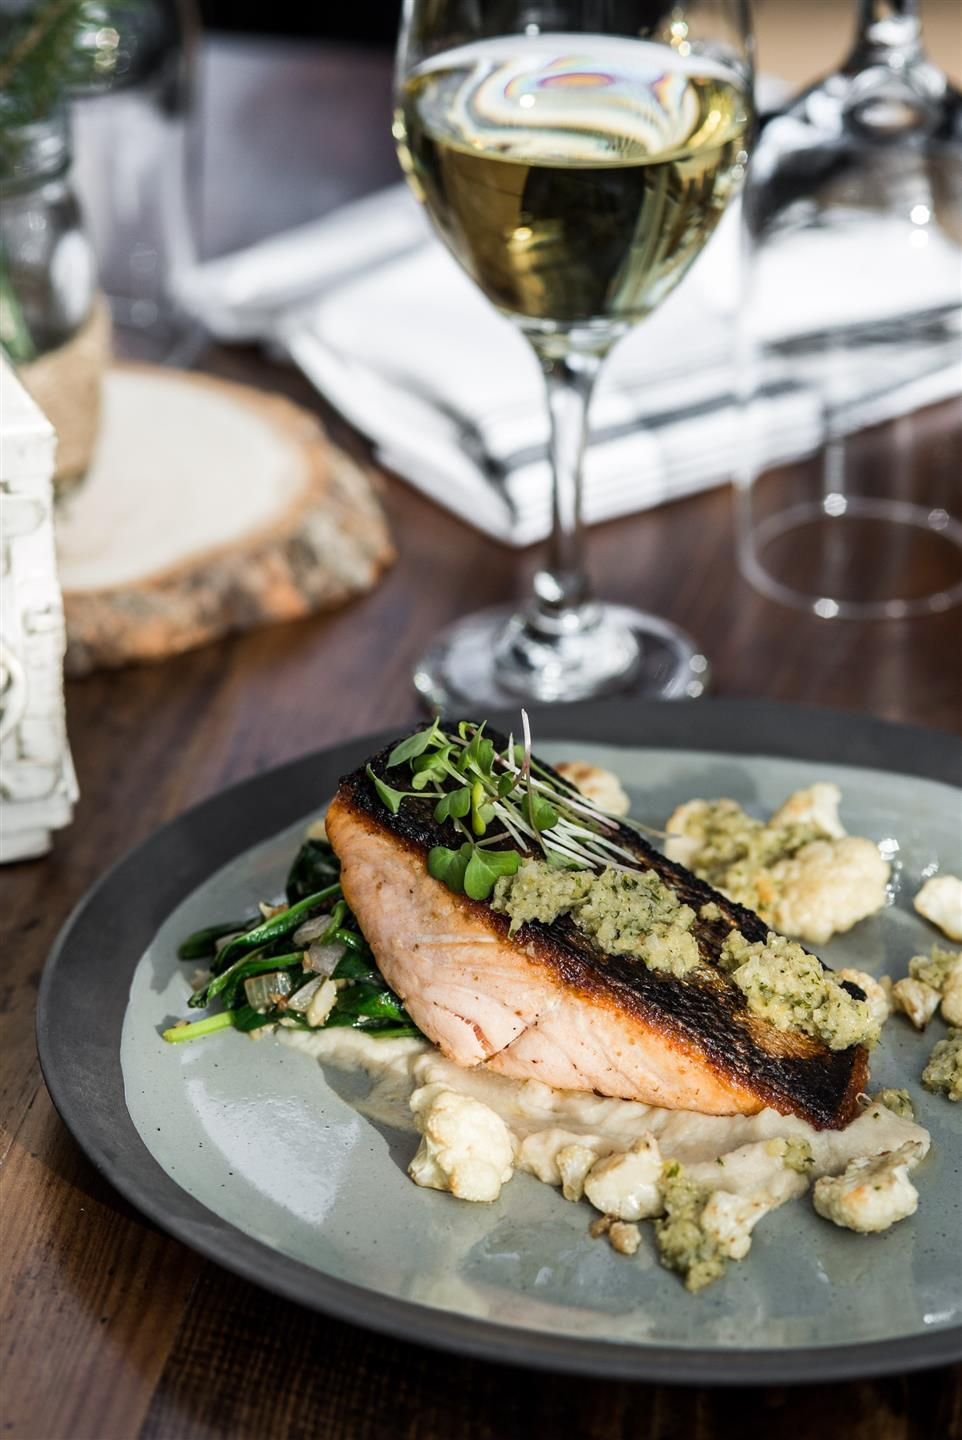 Top view of Pan Seared Salmon - Roasted Cauliflower, Cauliflower Puree, Stone's Throw Green Olive Pesto, Wilted Spinach